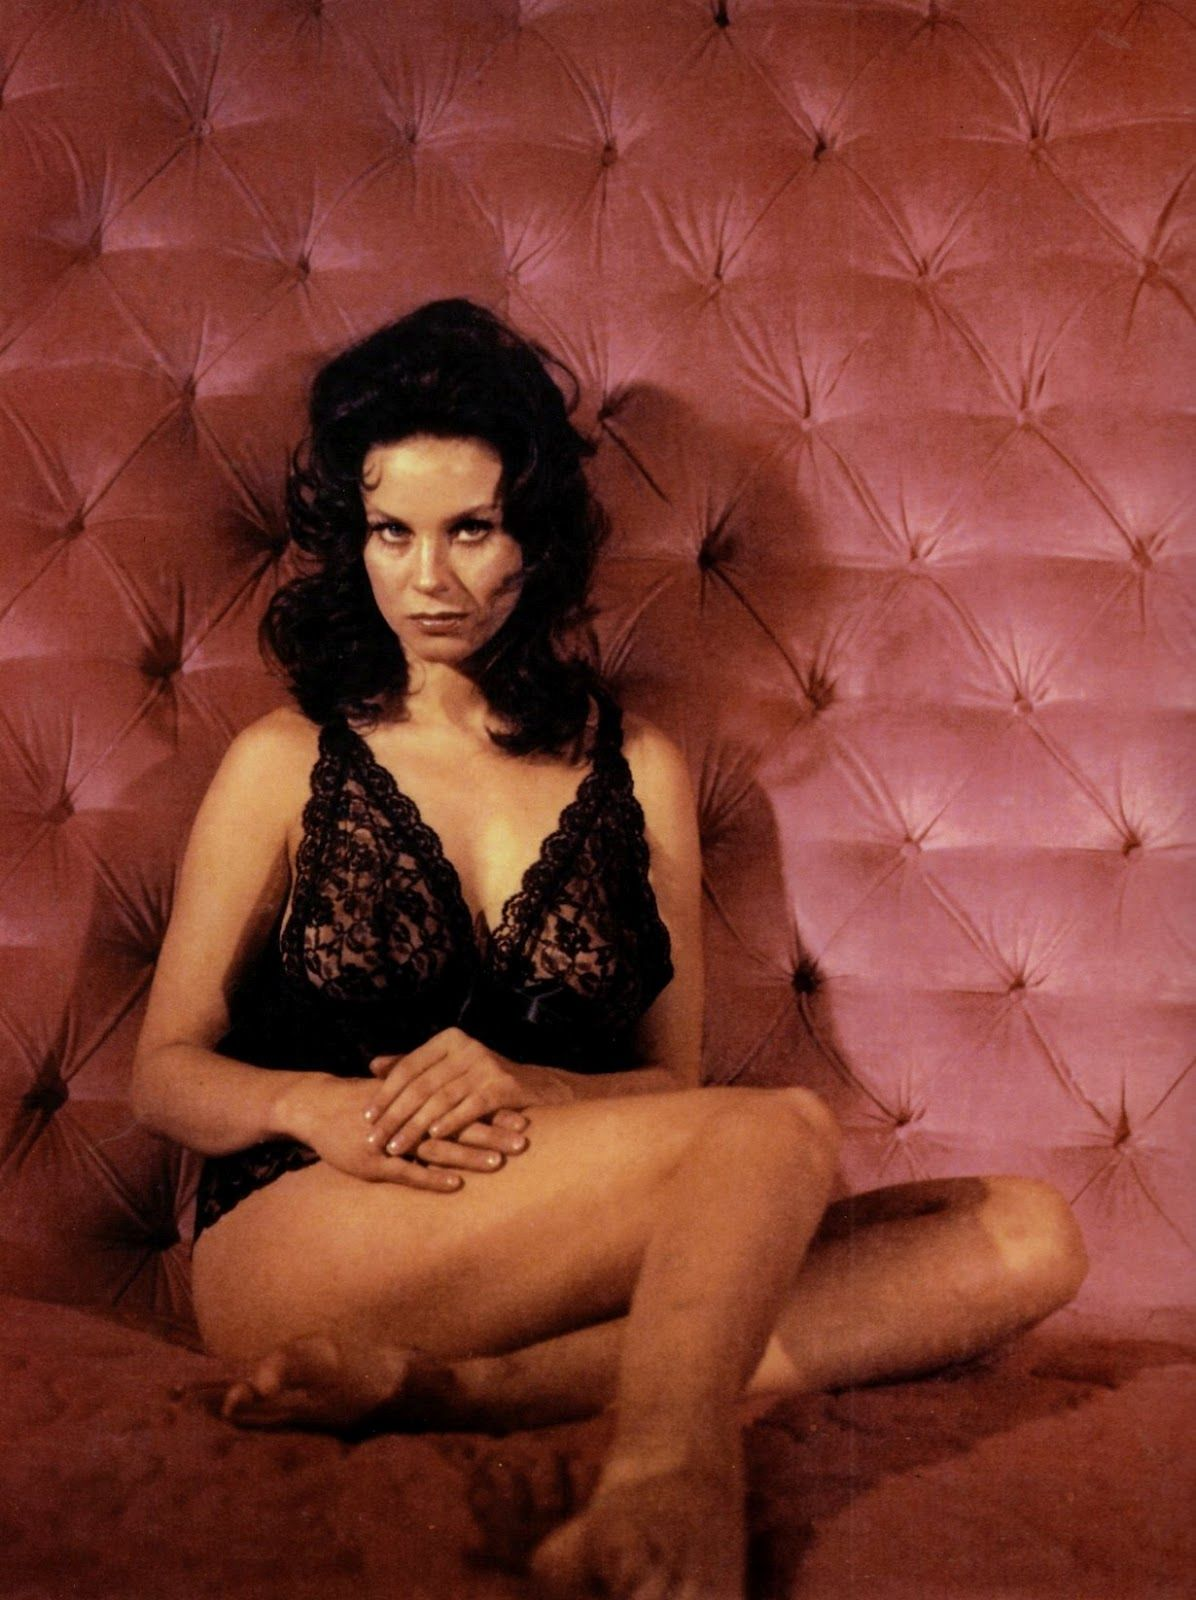 lana wood peyton place